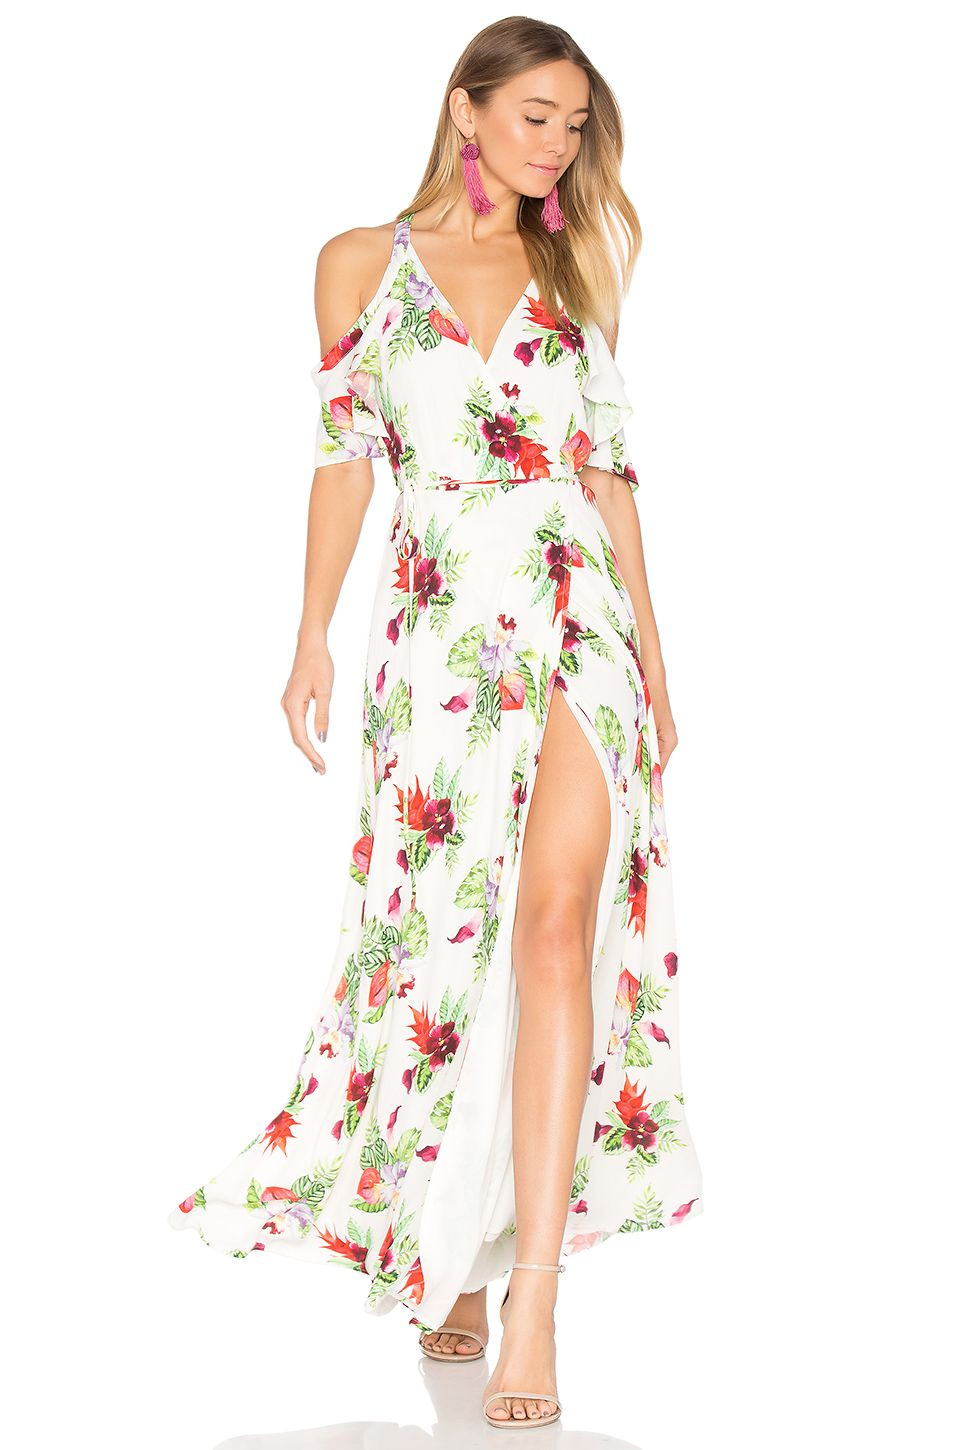 Privacy Please X Revolve Acme Dress In White Floral Revolve Dresses Women S Fashion Dresses Cutout Shoulder Dress Colorful floral dresses with more styles come in high quality and available prices! pinterest